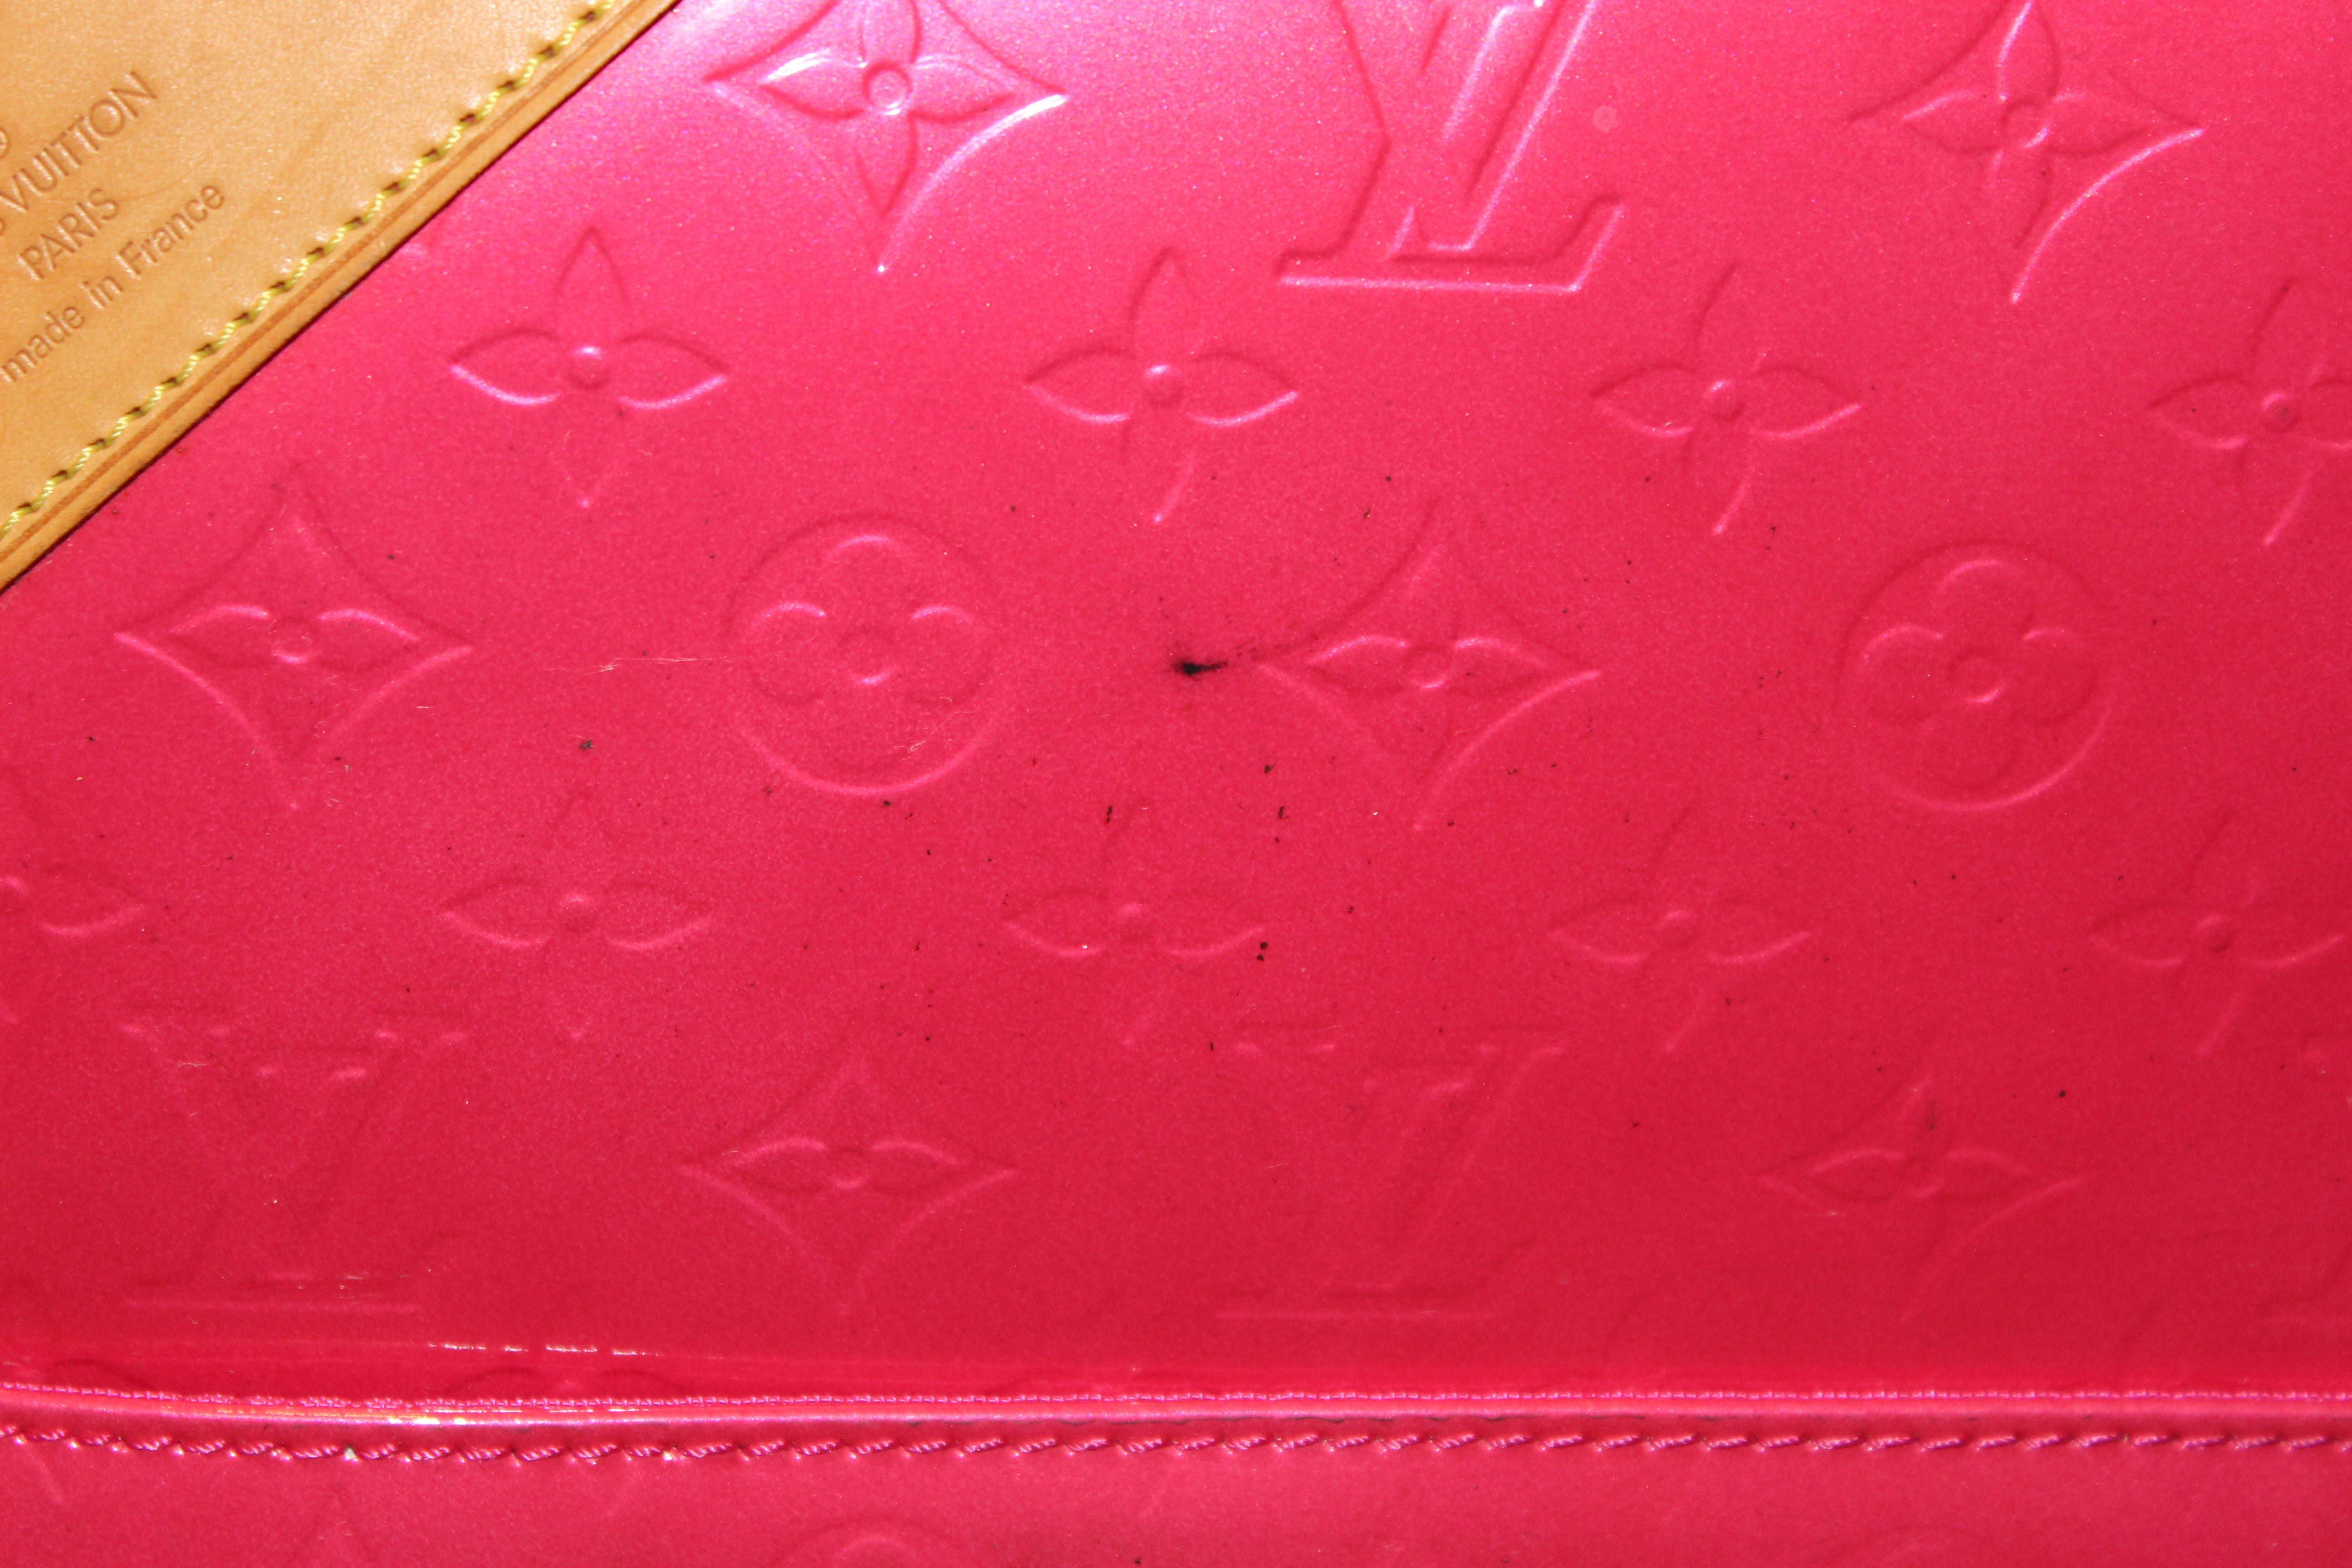 Authentic Louis Vuitton Pink Monogram Vernis Leather Pegase 45 Luggage